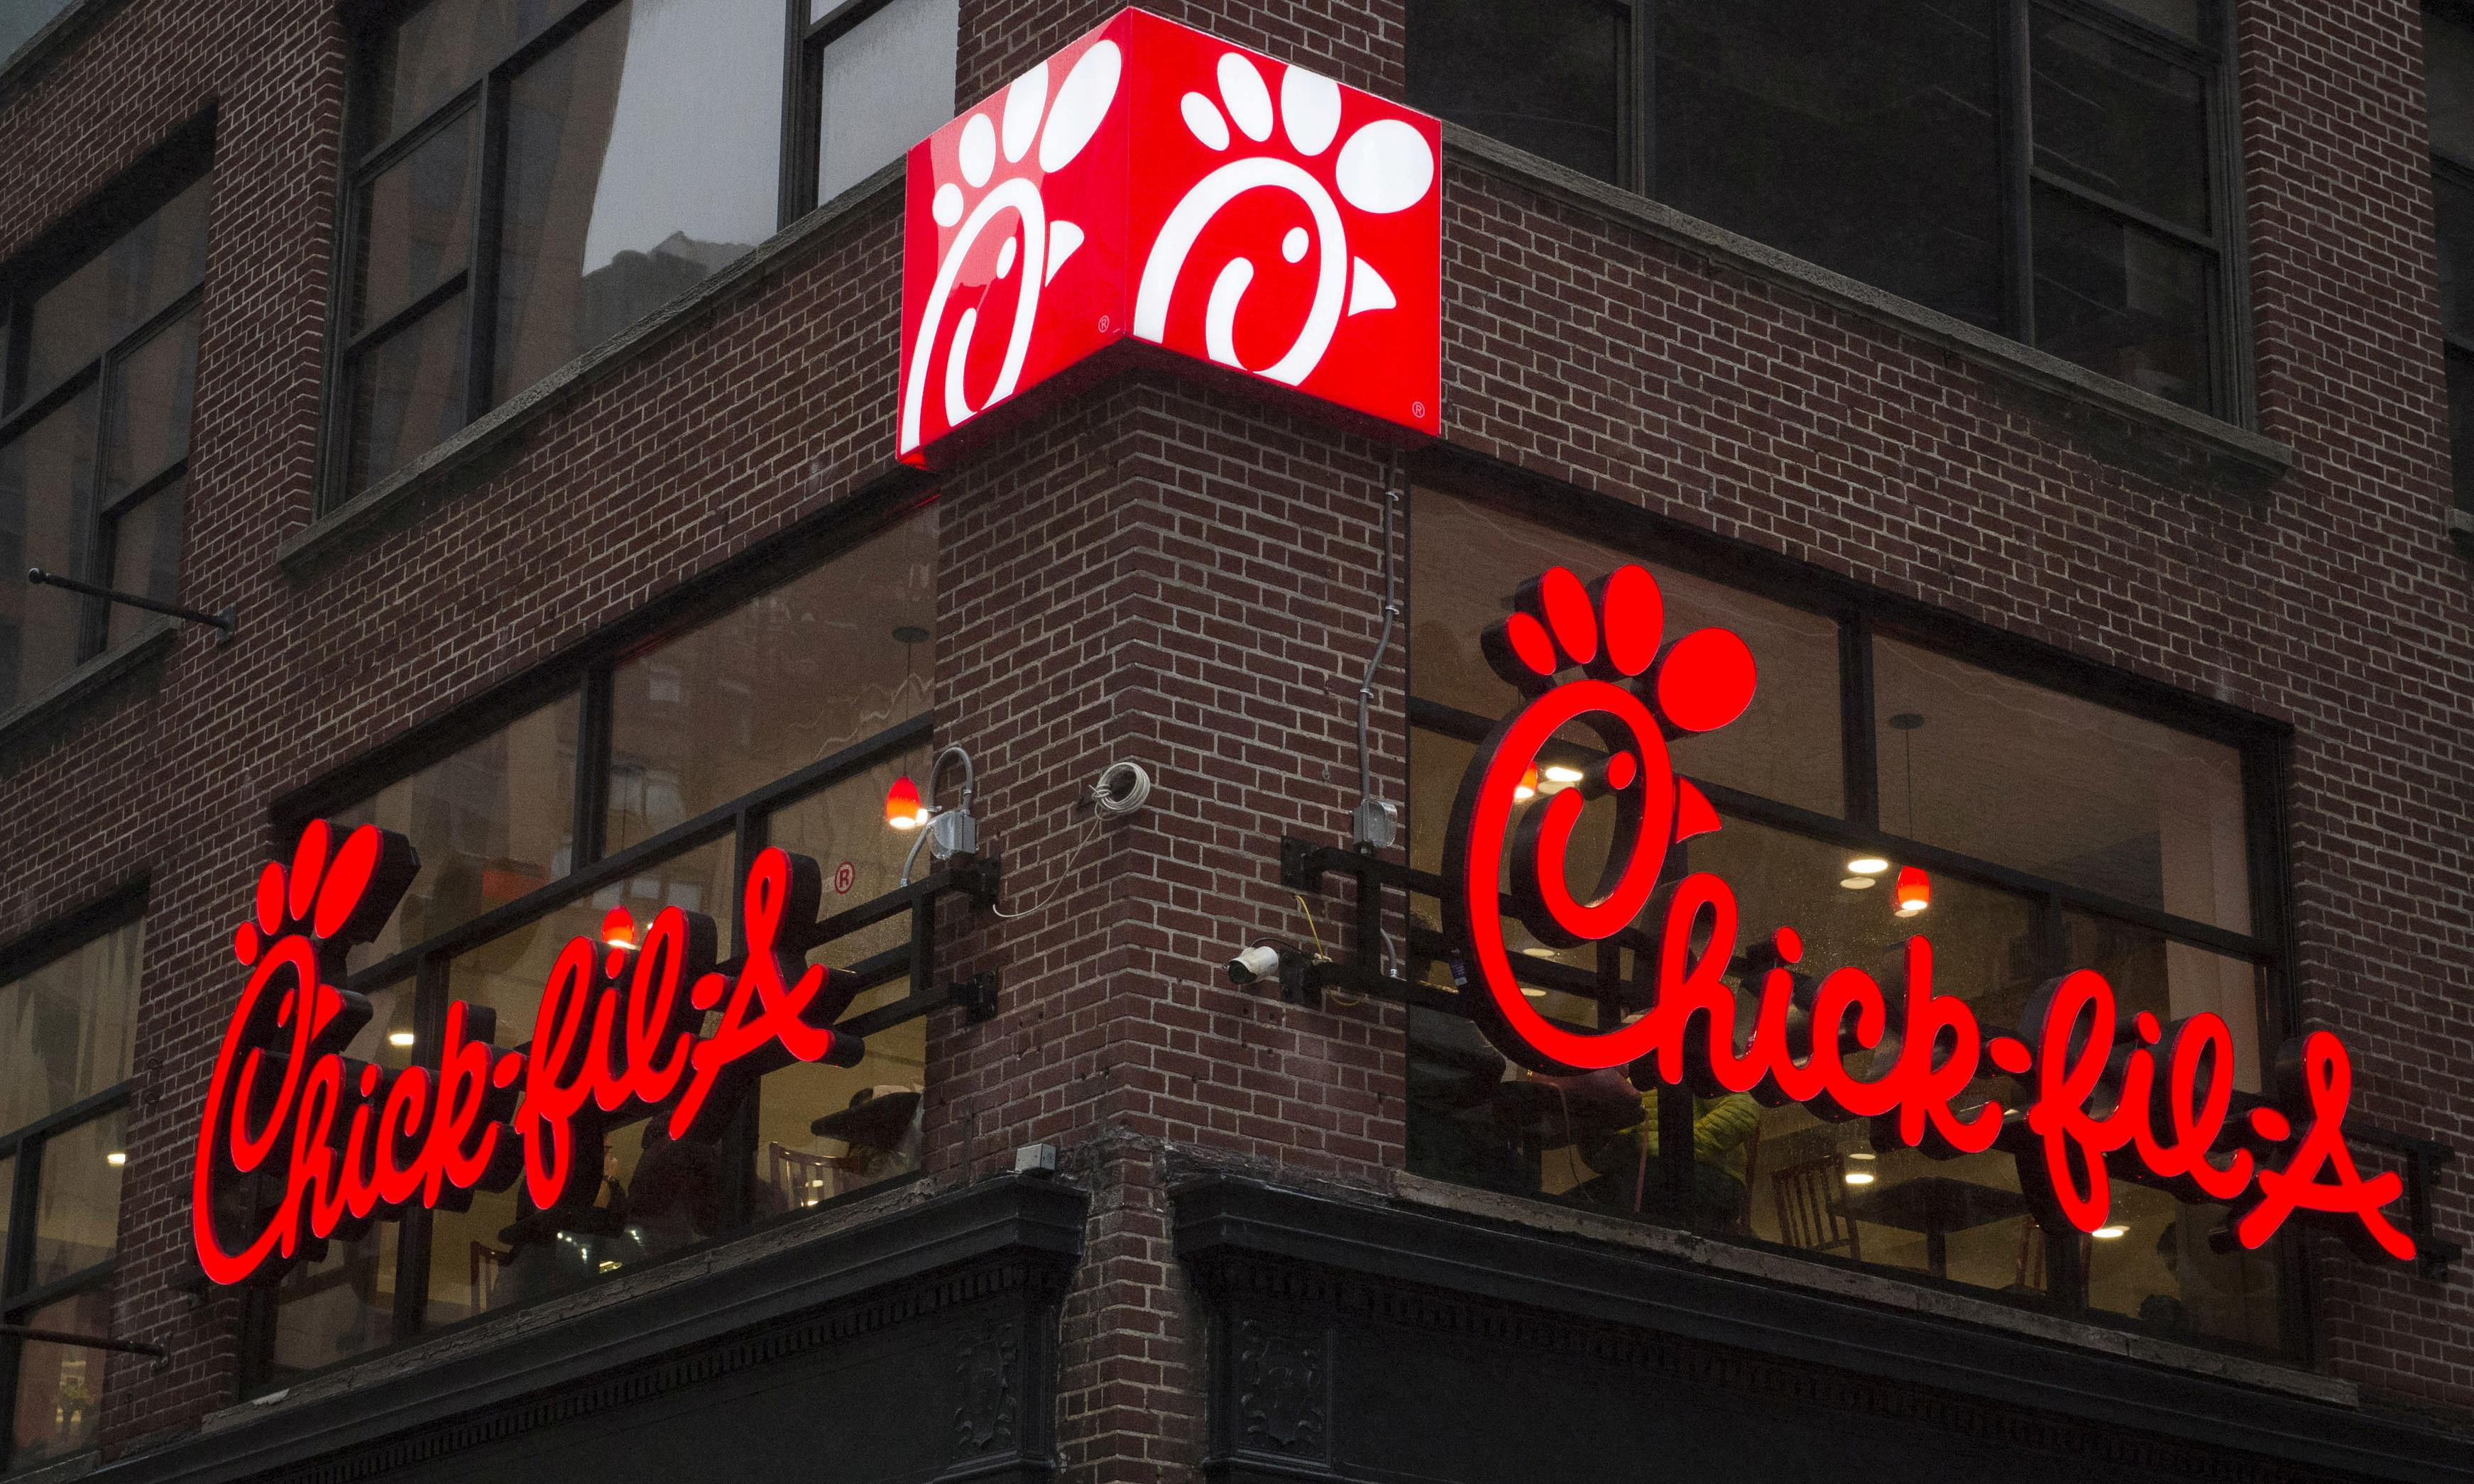 'Cluck off': UK's only Chick-fil-A outlet to shut in LGBT rights row